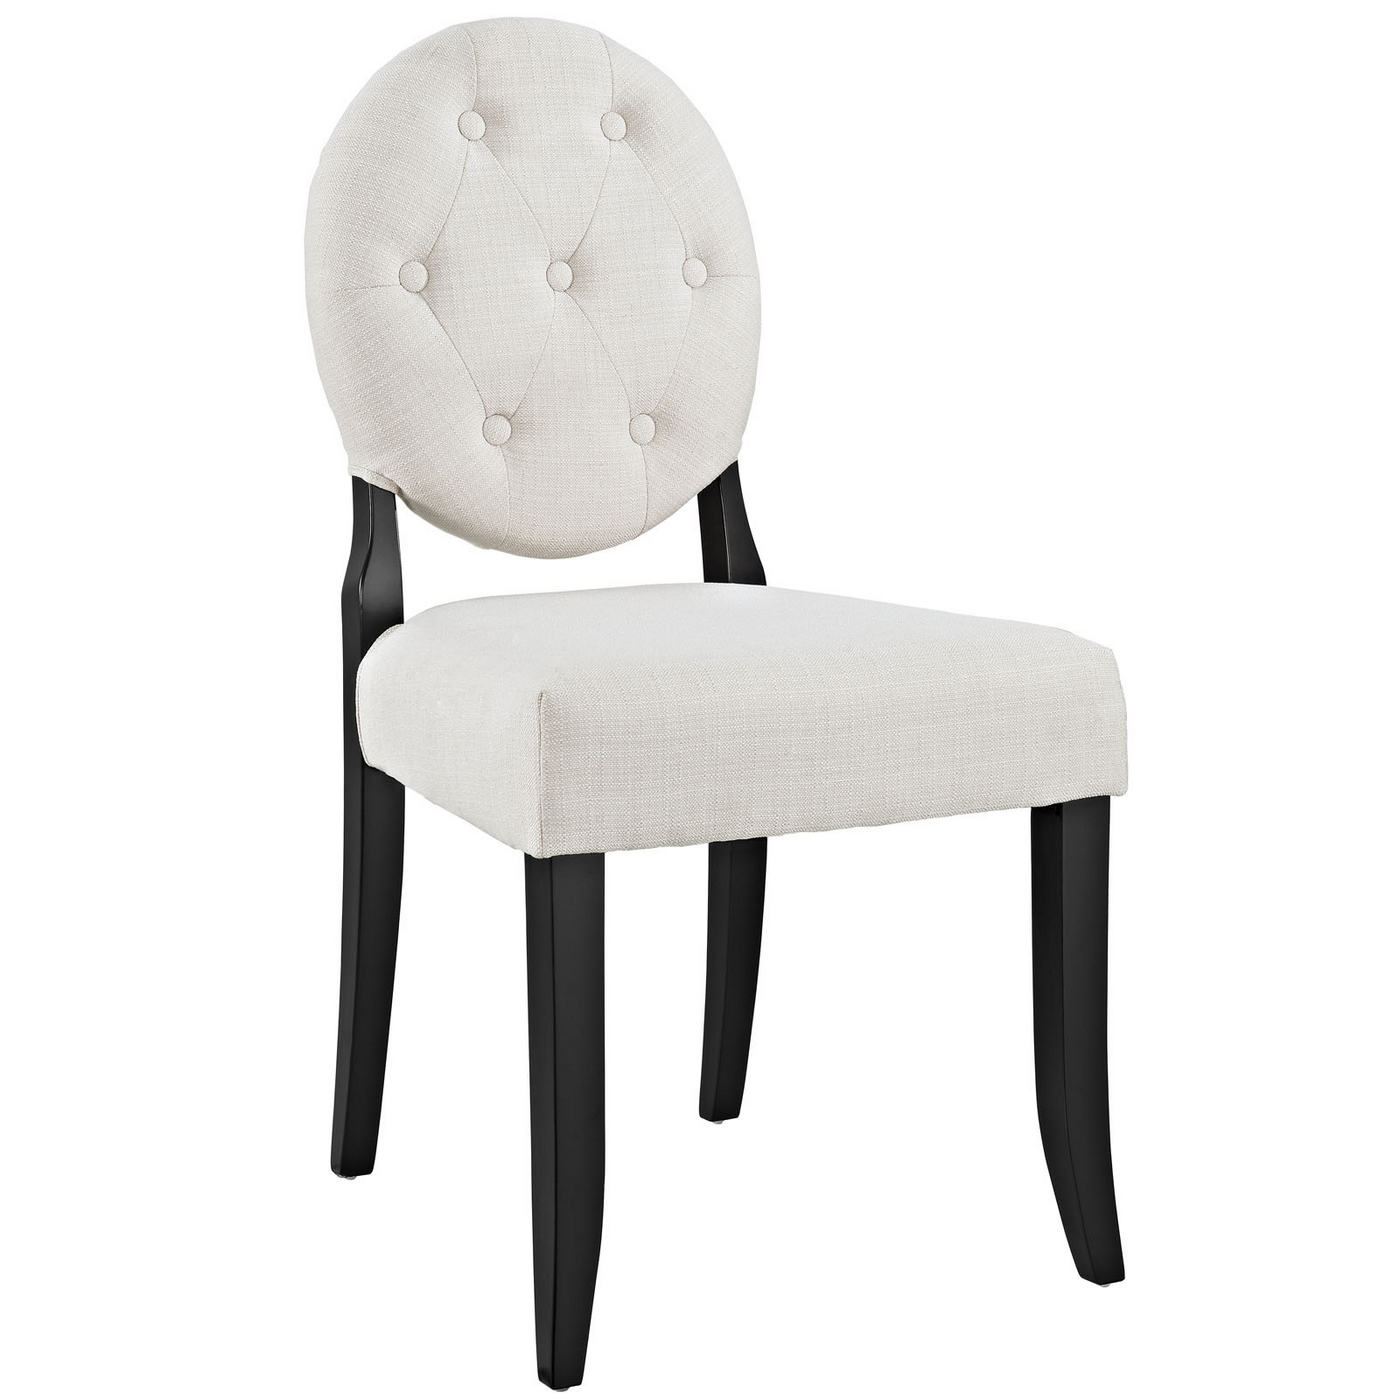 button modern round back upholstered dining side chair w wood legs beige. Black Bedroom Furniture Sets. Home Design Ideas